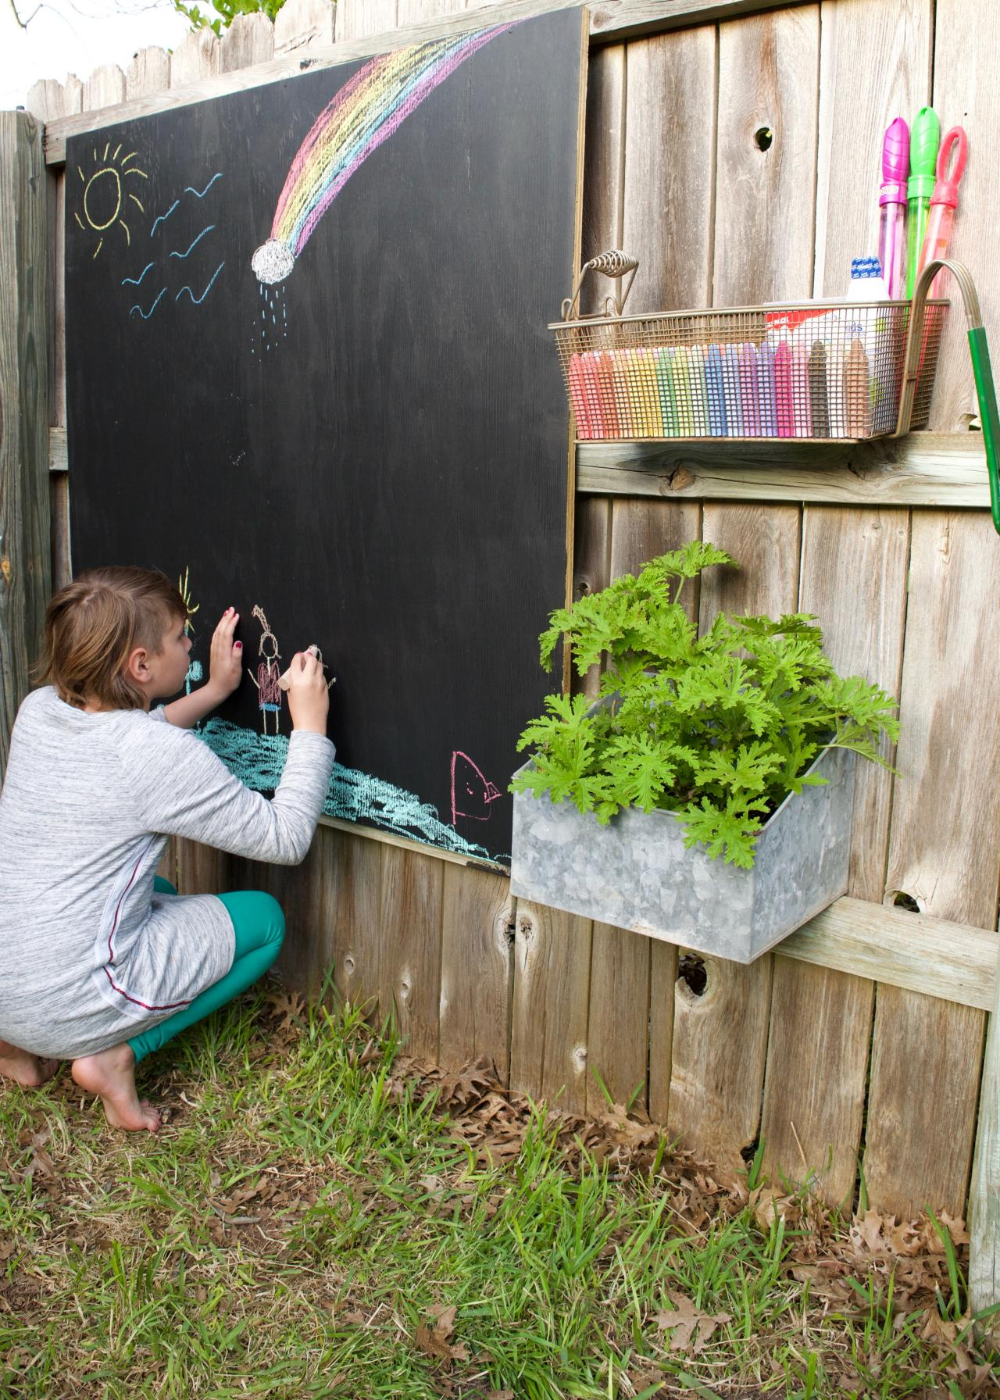 How to Make an Outdoor Chalkboard Activity Wall for Kids